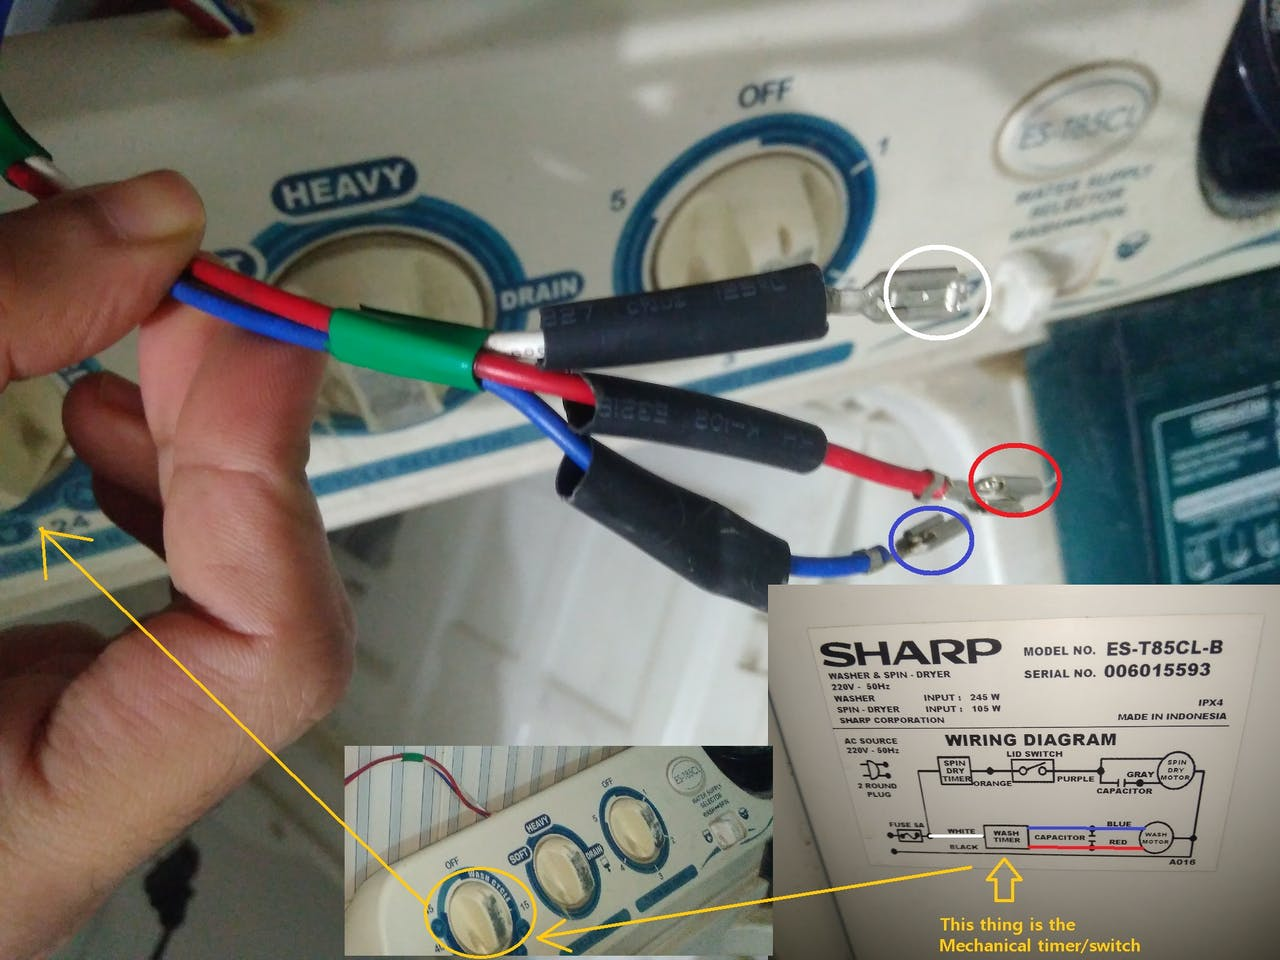 [DIAGRAM_38IU]  Washing Machine Timer - Hackster.io | Wiring Diagram Of Washing Machine Timer |  | Hackster.io